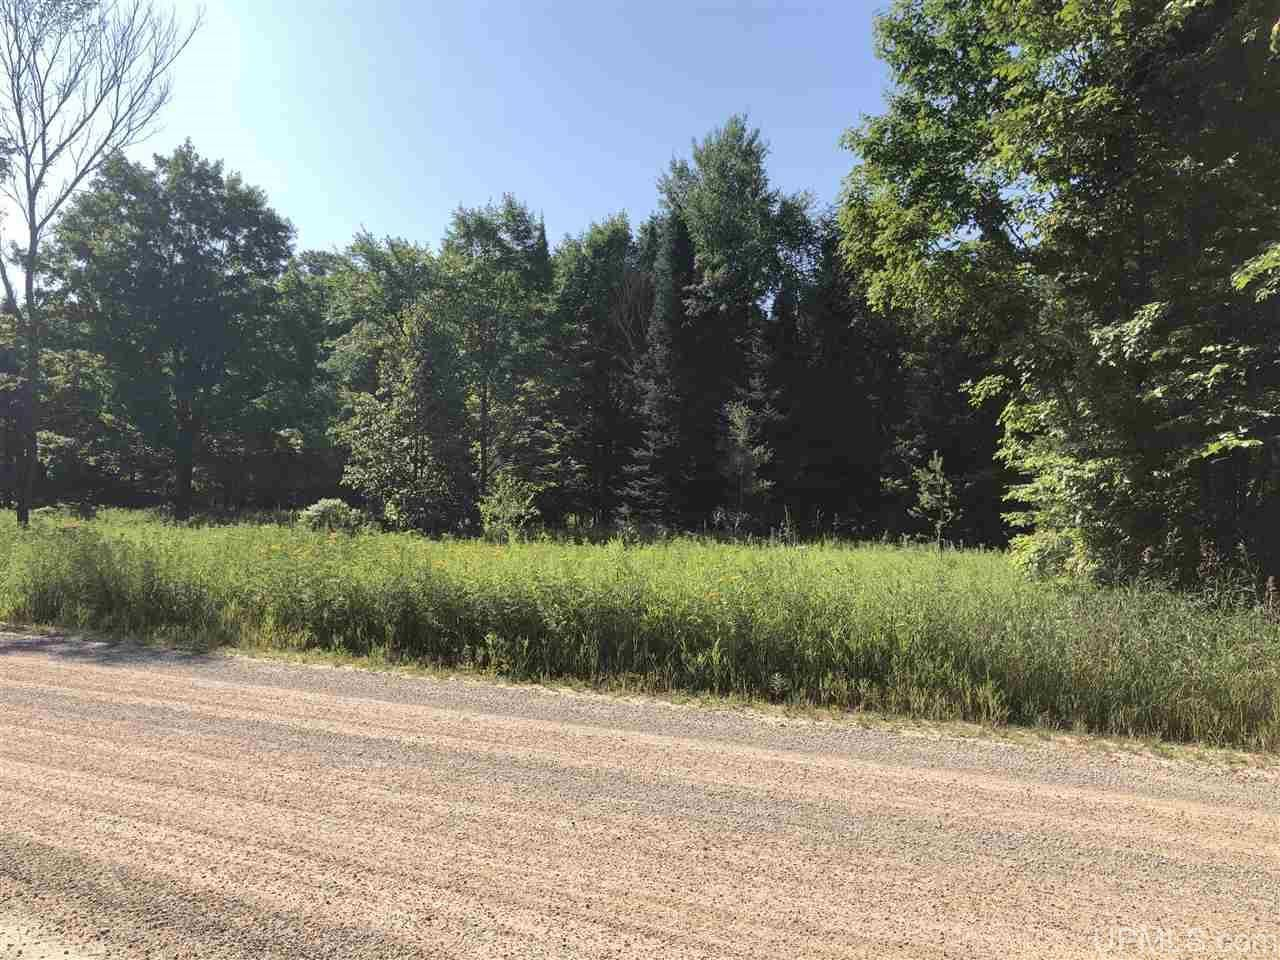 Photo of E1385 Vogel, Trenary, MI 49891 (MLS # 1125341)